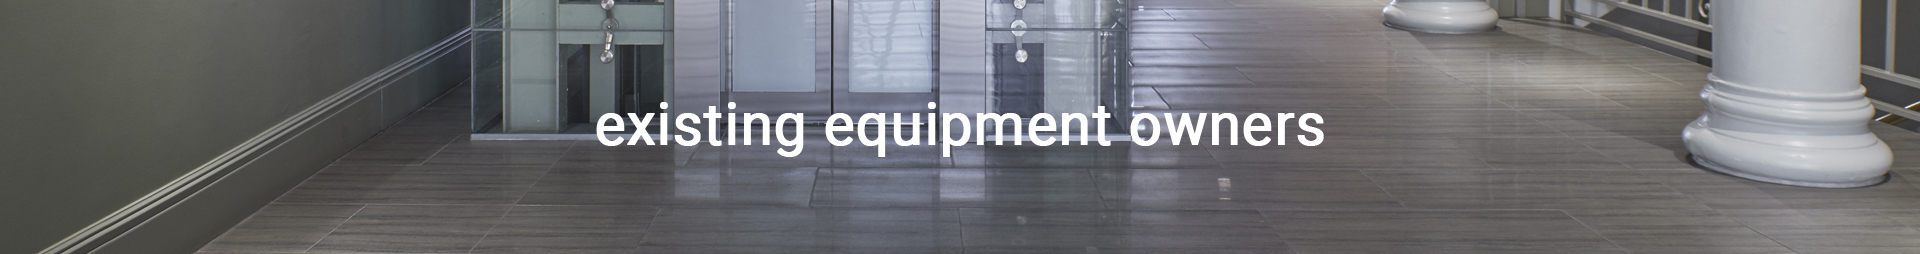 existing-equipment-owners